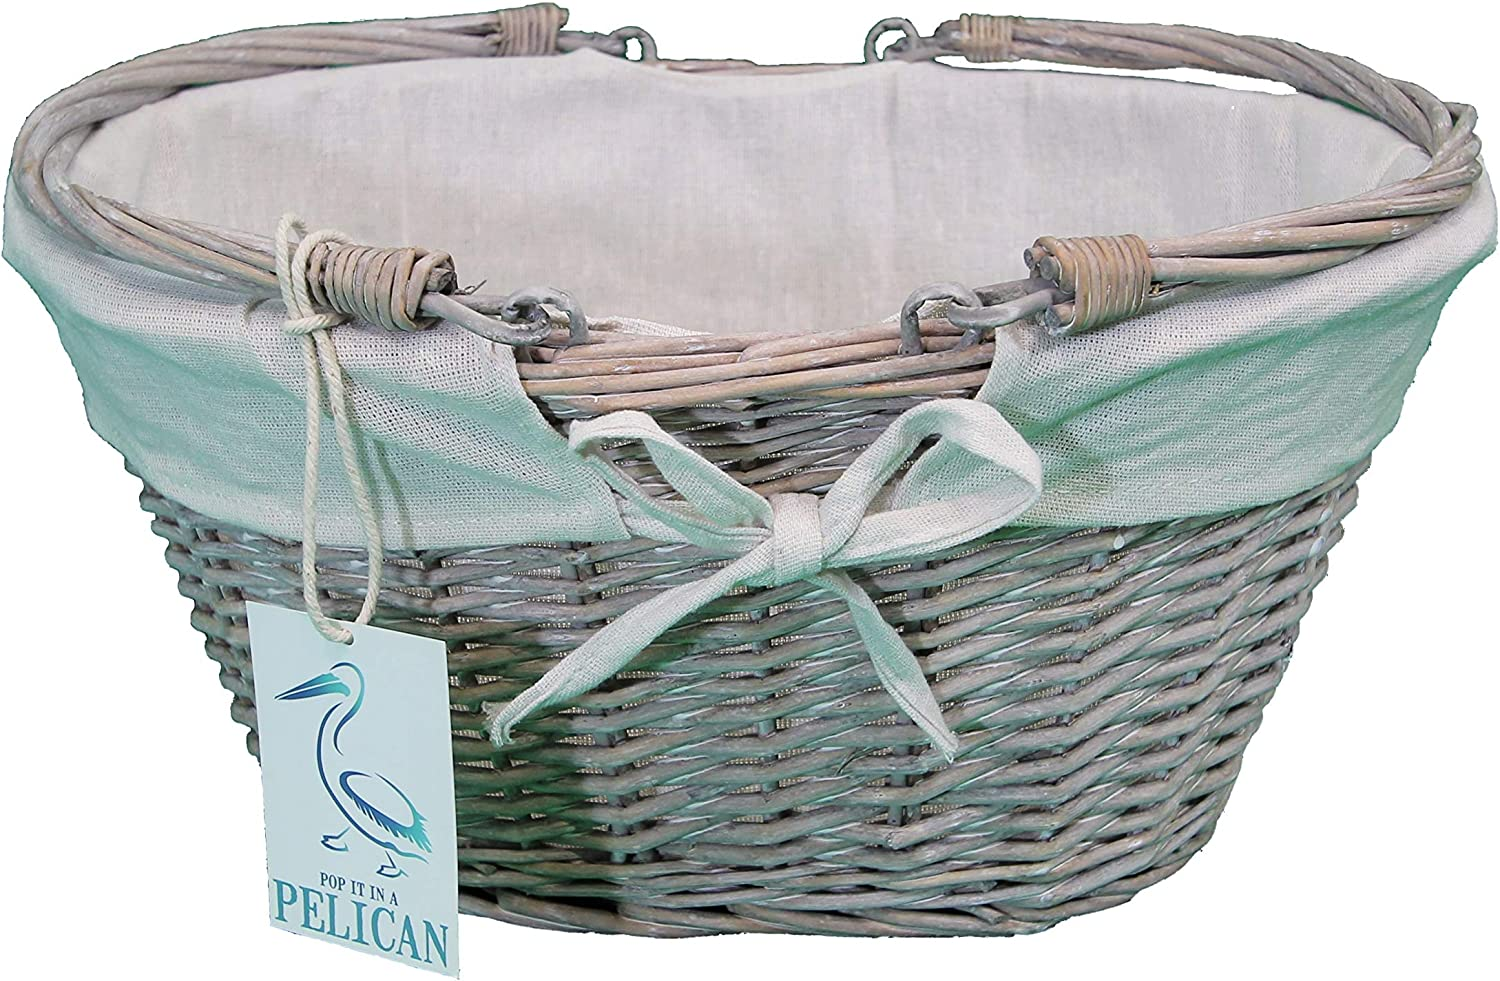 wedding or baby shower parties Empty storage Great for Gifts Christening Pop-it-in-a-Pelican Grey White and Natural Wicker lined basket with drop handles